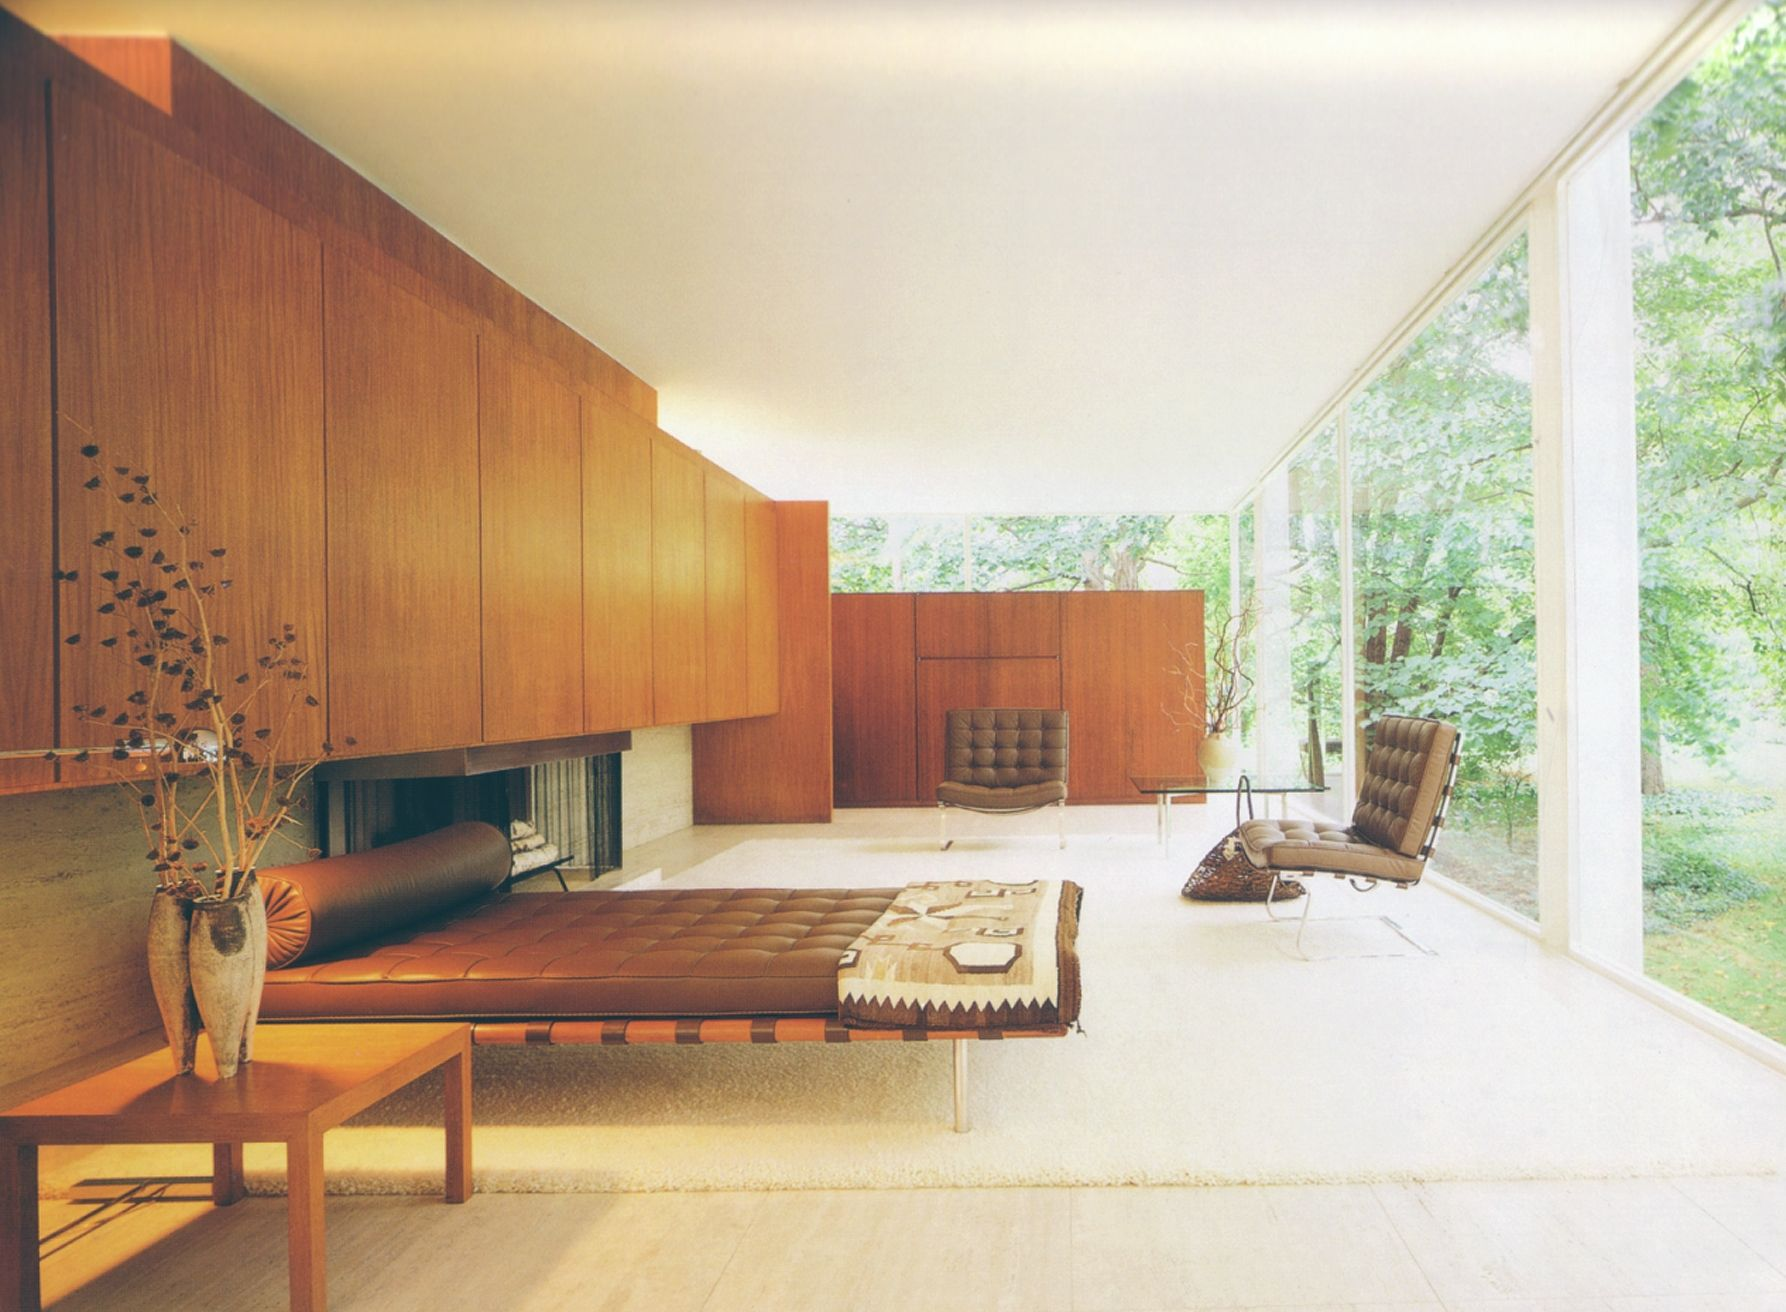 Awesome Mies Van Der Rohe Barcelona Day Bed (and Barcelona Chairs) Inside Farnsworth  House, Plano, IL